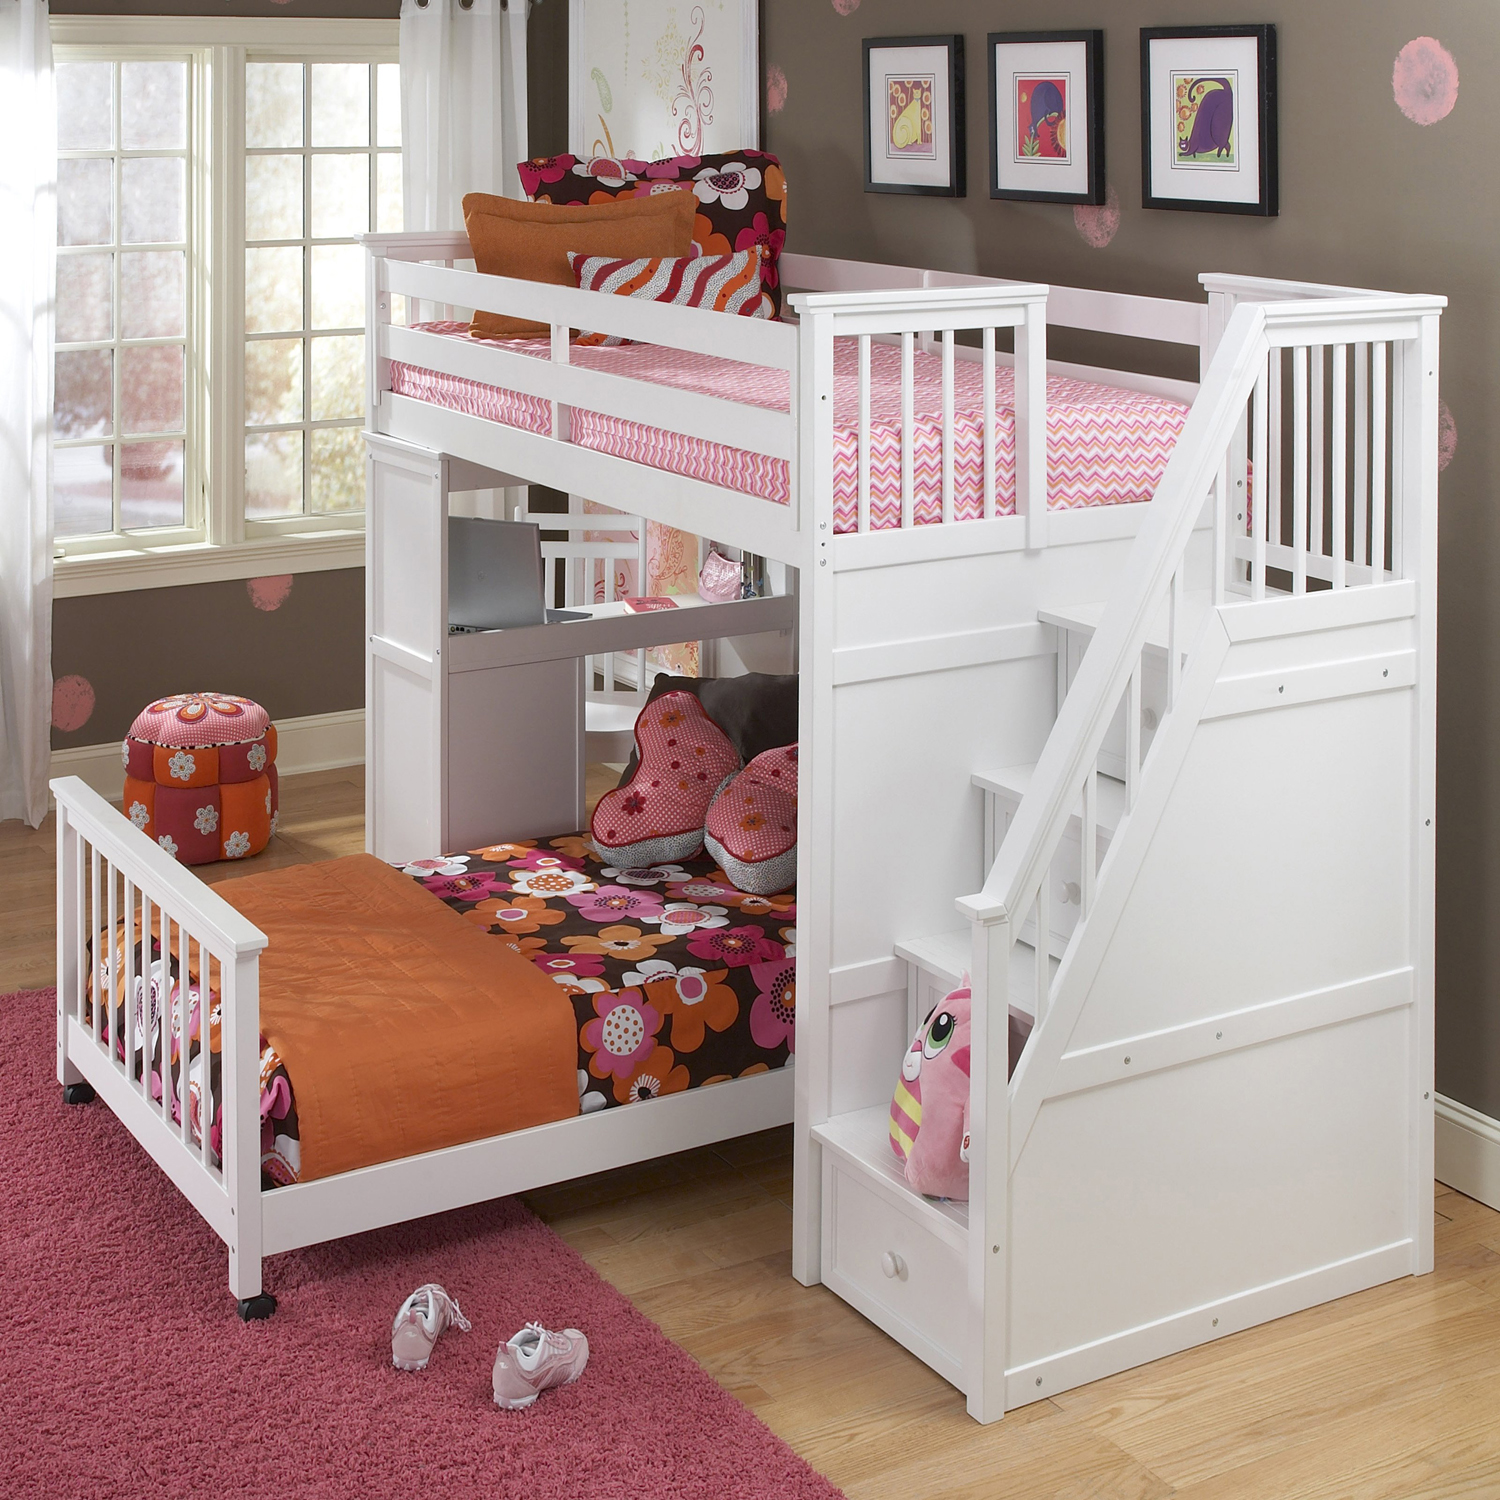 Cheap Kids Bunk Bed With Stairs Pull Out Bed For Kids Buy Child Bed With Storage Colorful Child Bunk Bed Child Cot Bed Product On Alibaba Com